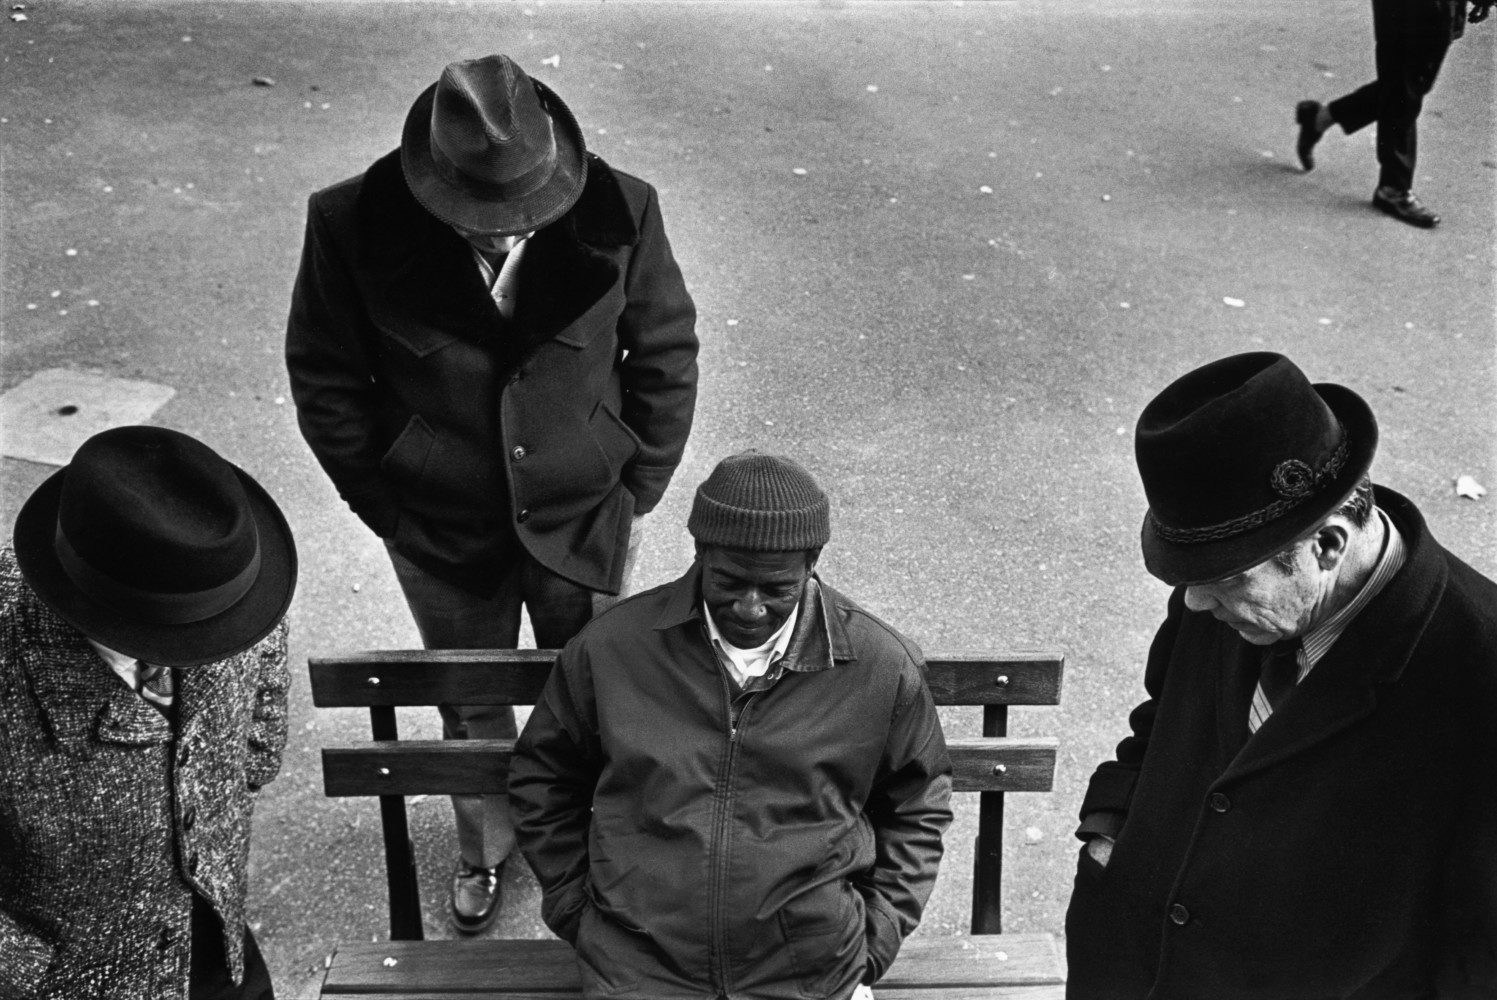 Black and white street photography by Richard Kalvar, a group of men in Washington Square, New York City.